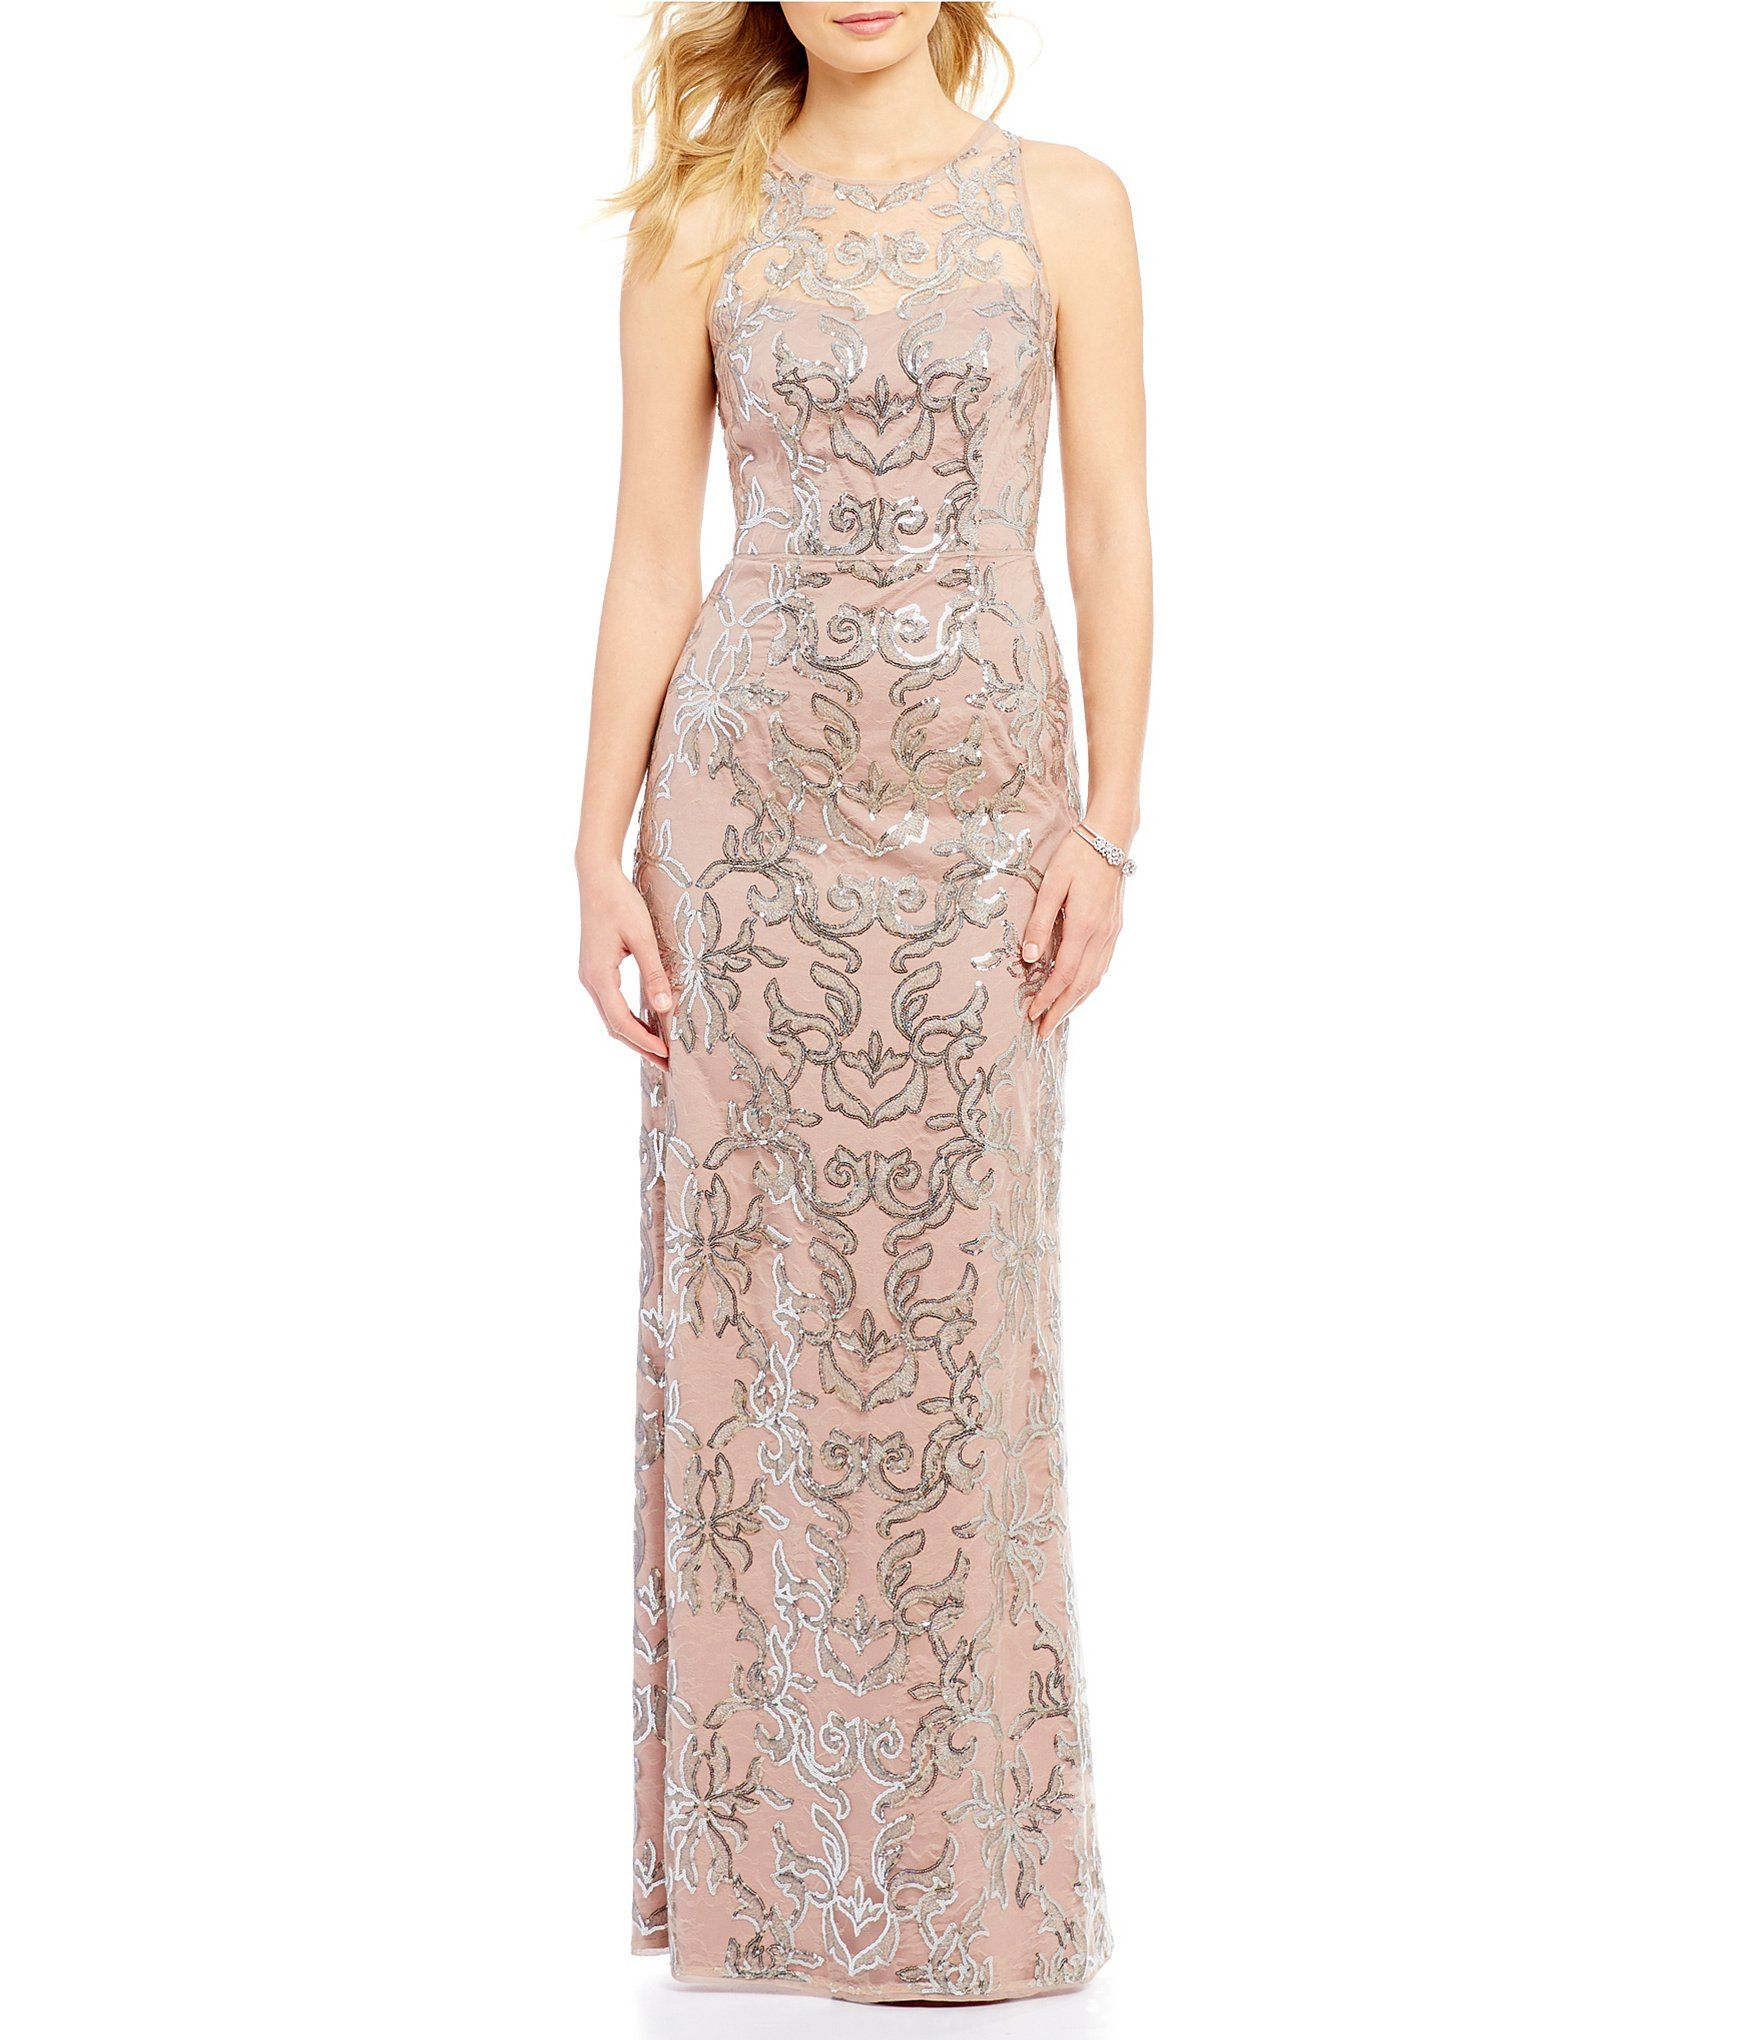 Shop for adrianna papell sequin lace illusion halter neck gown at